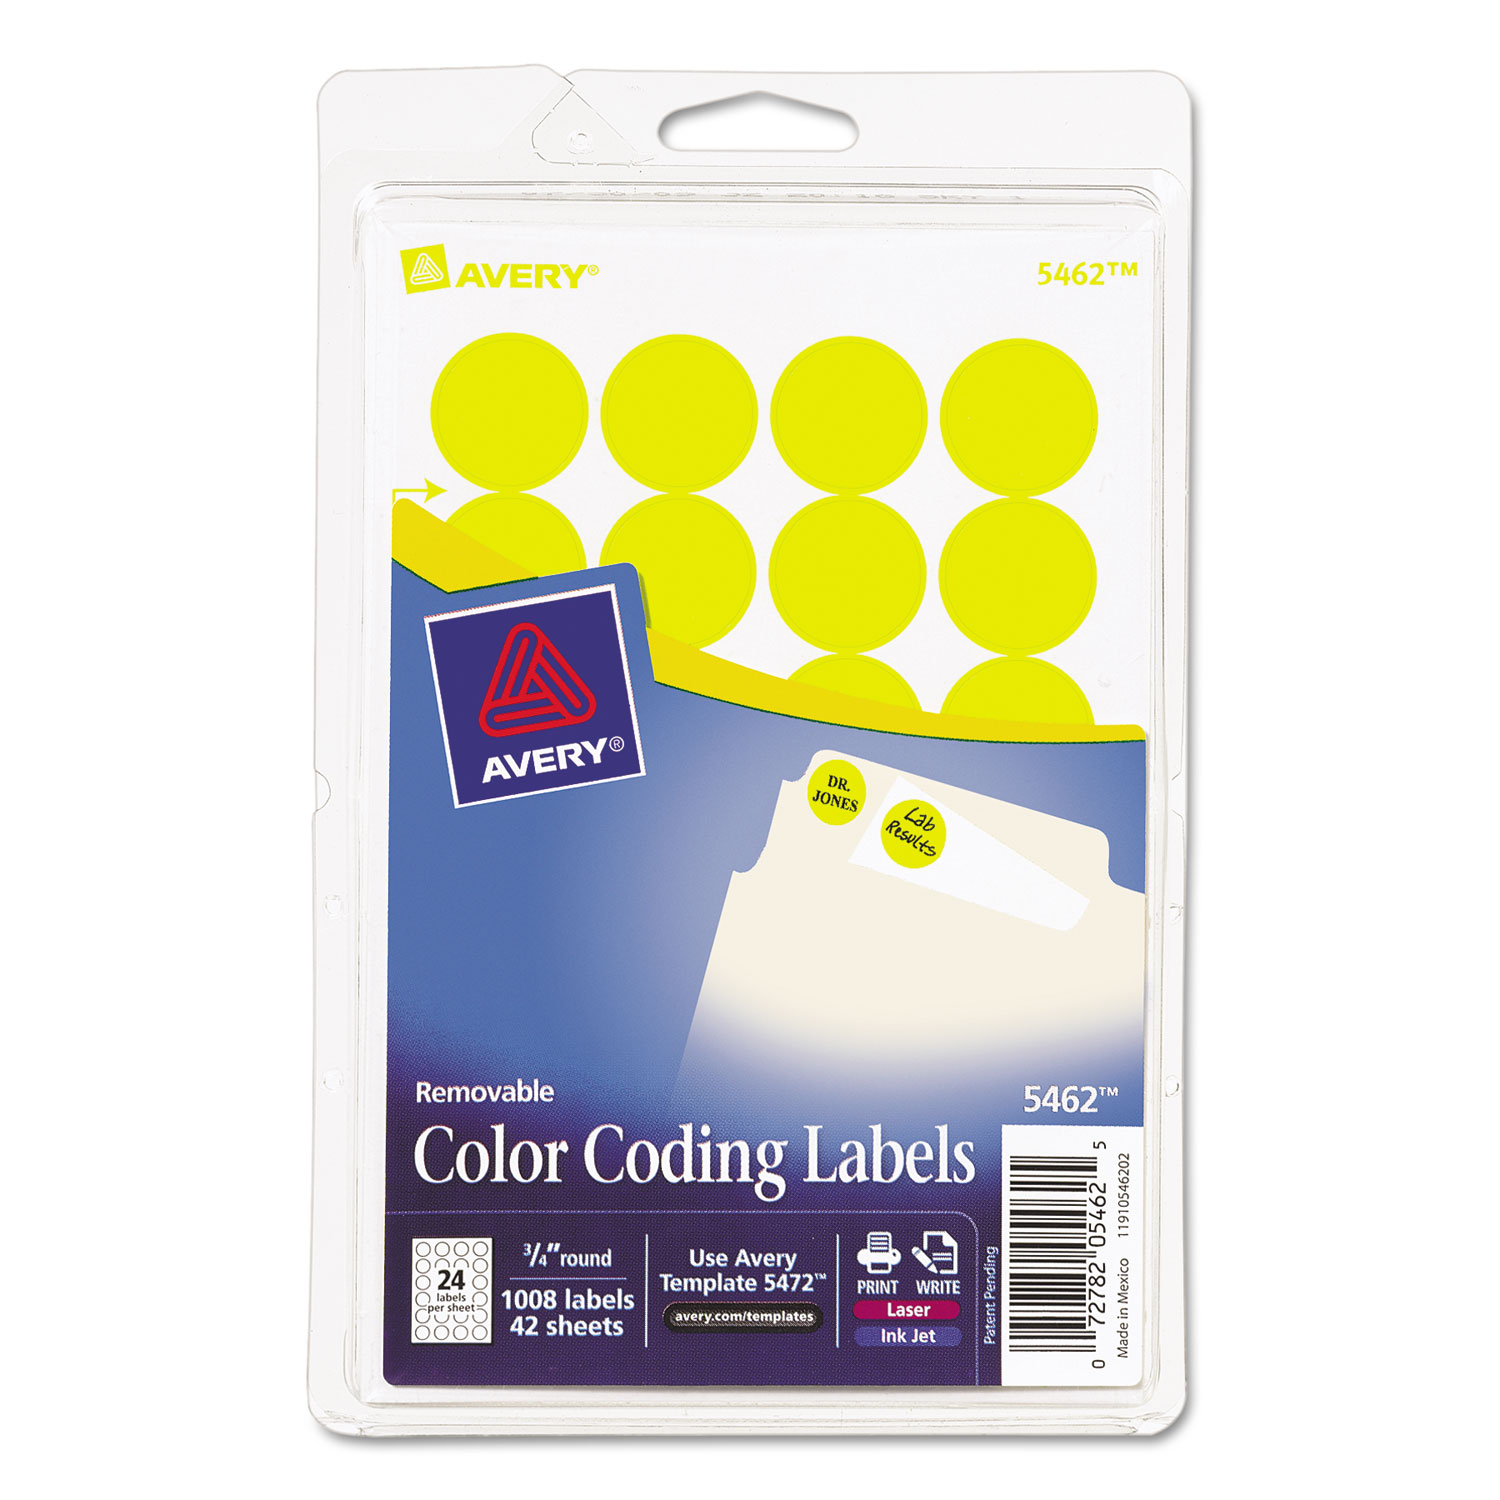 Printable Removable Color Coding Labels By AveryR AVE05462